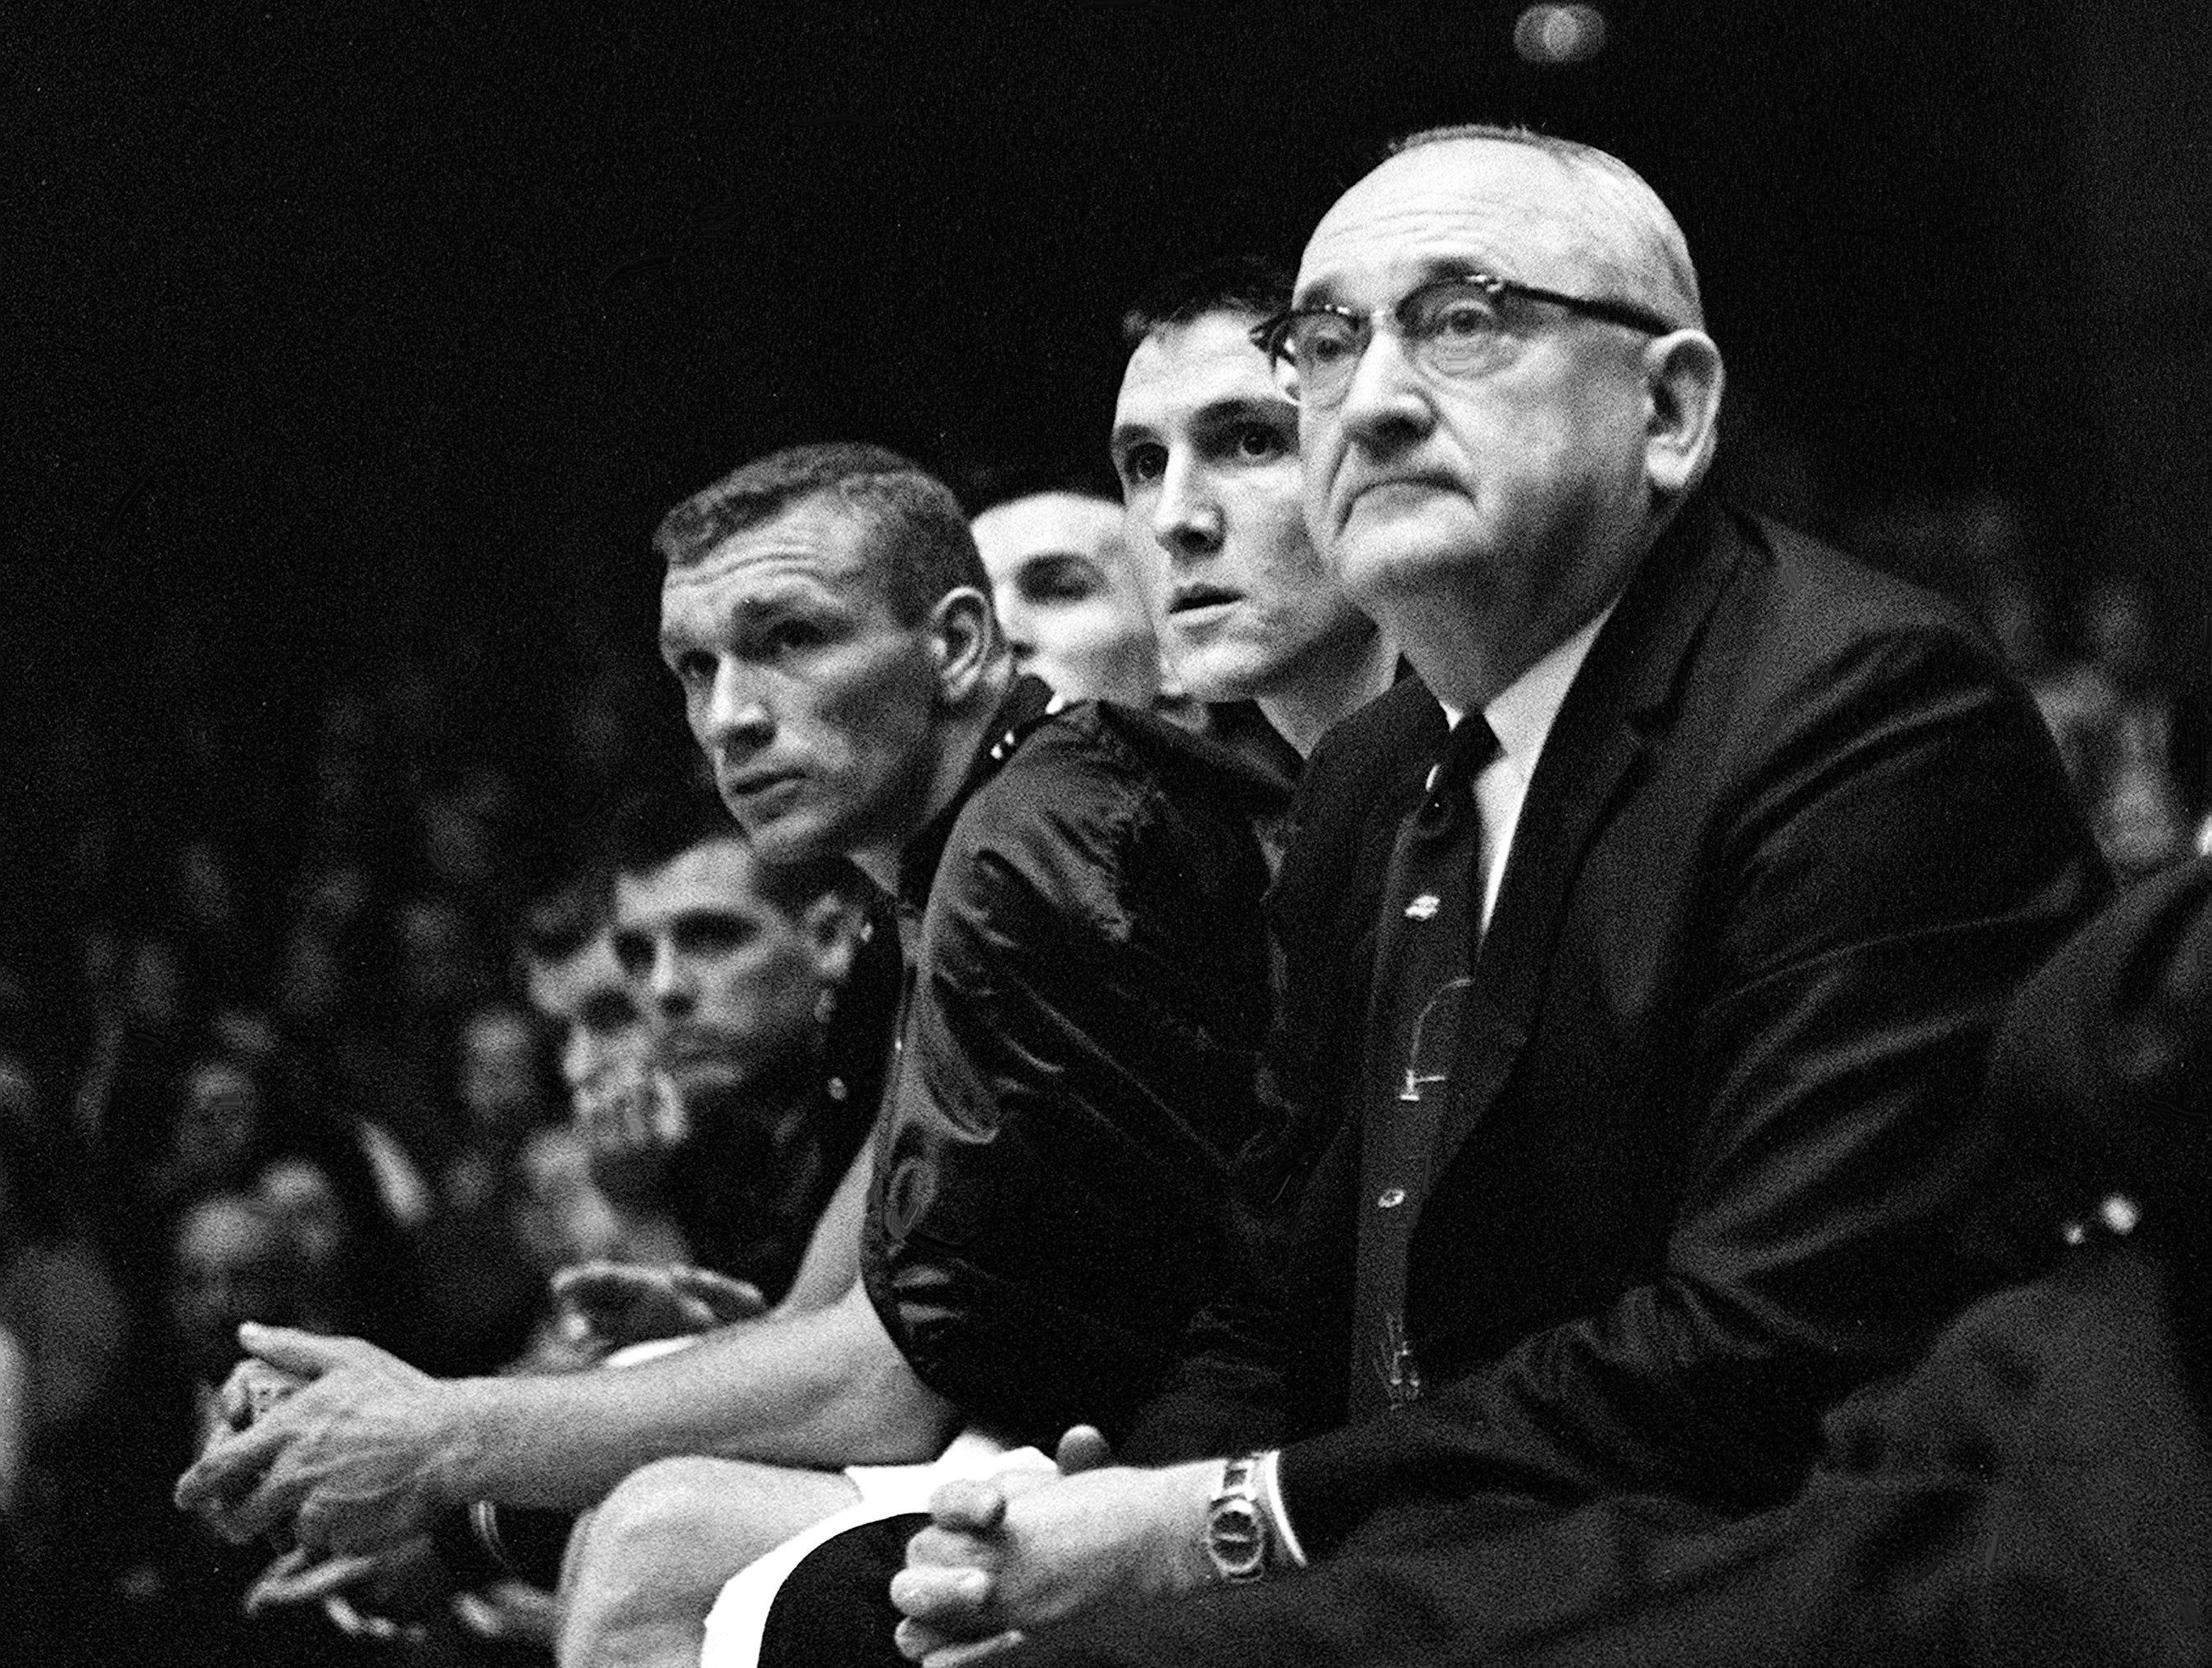 Kentucky head coach Adolph Rupp, right, keeps an eye on his team against Vanderbilt Jan. 9, 1961. The Wildcats became the Commodores' 11th straight victim, falling 64-62 before 7,324 fans at Memorial Gym in Nashville.